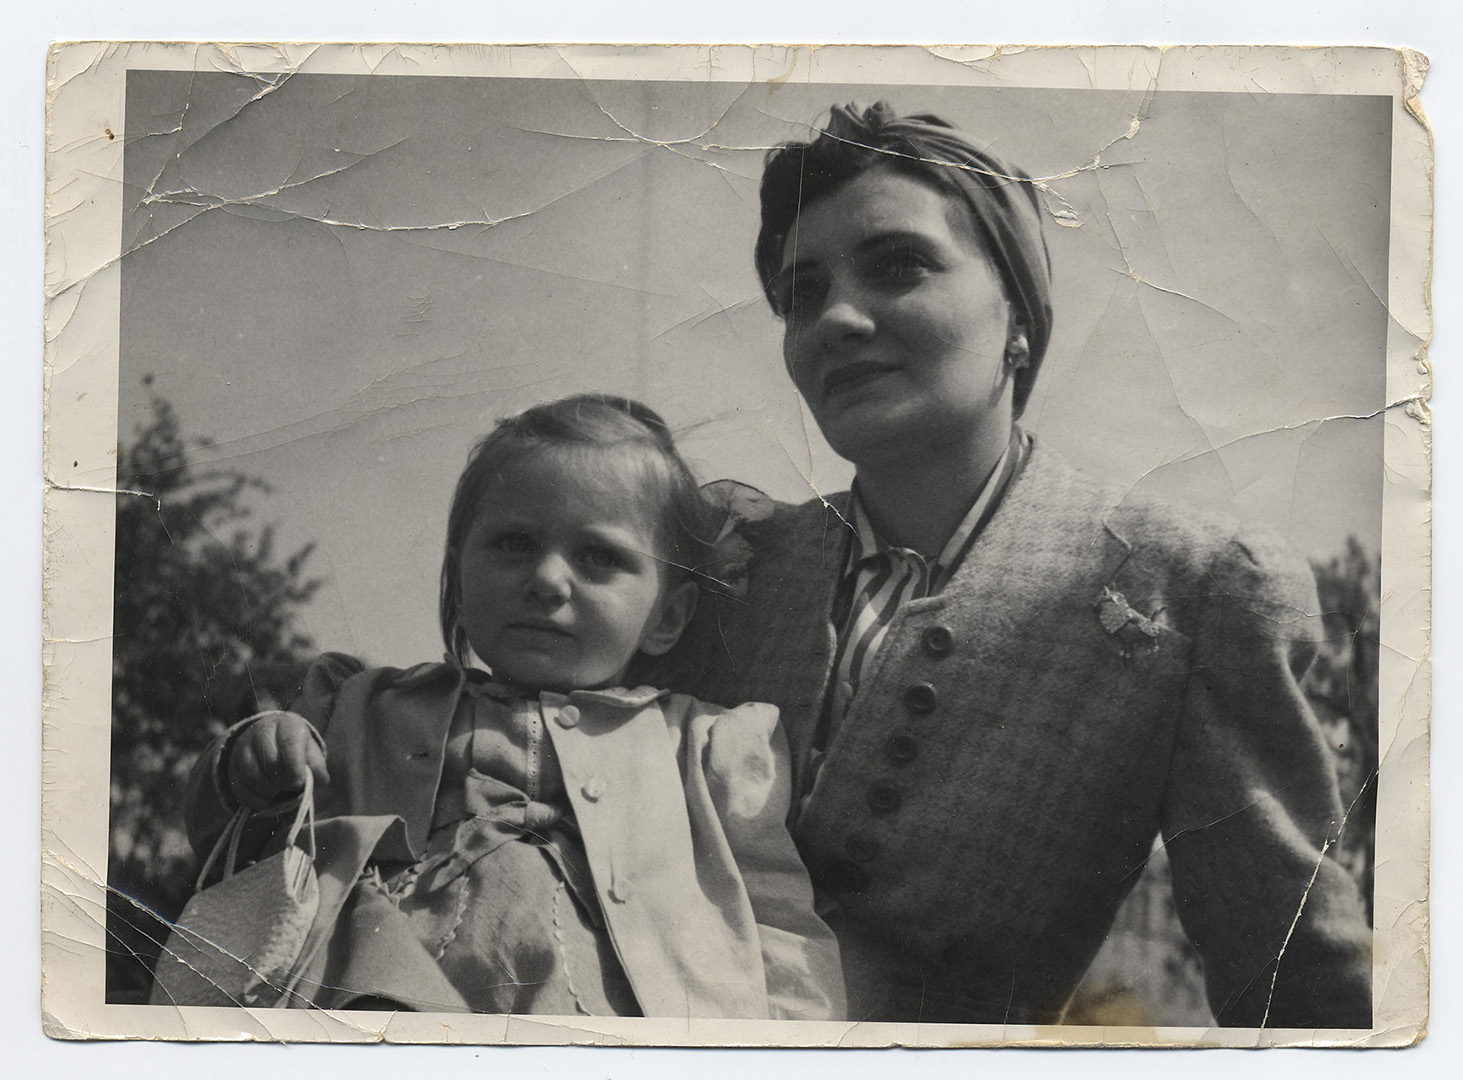 00a phylis and adele 1940s orig.jpg